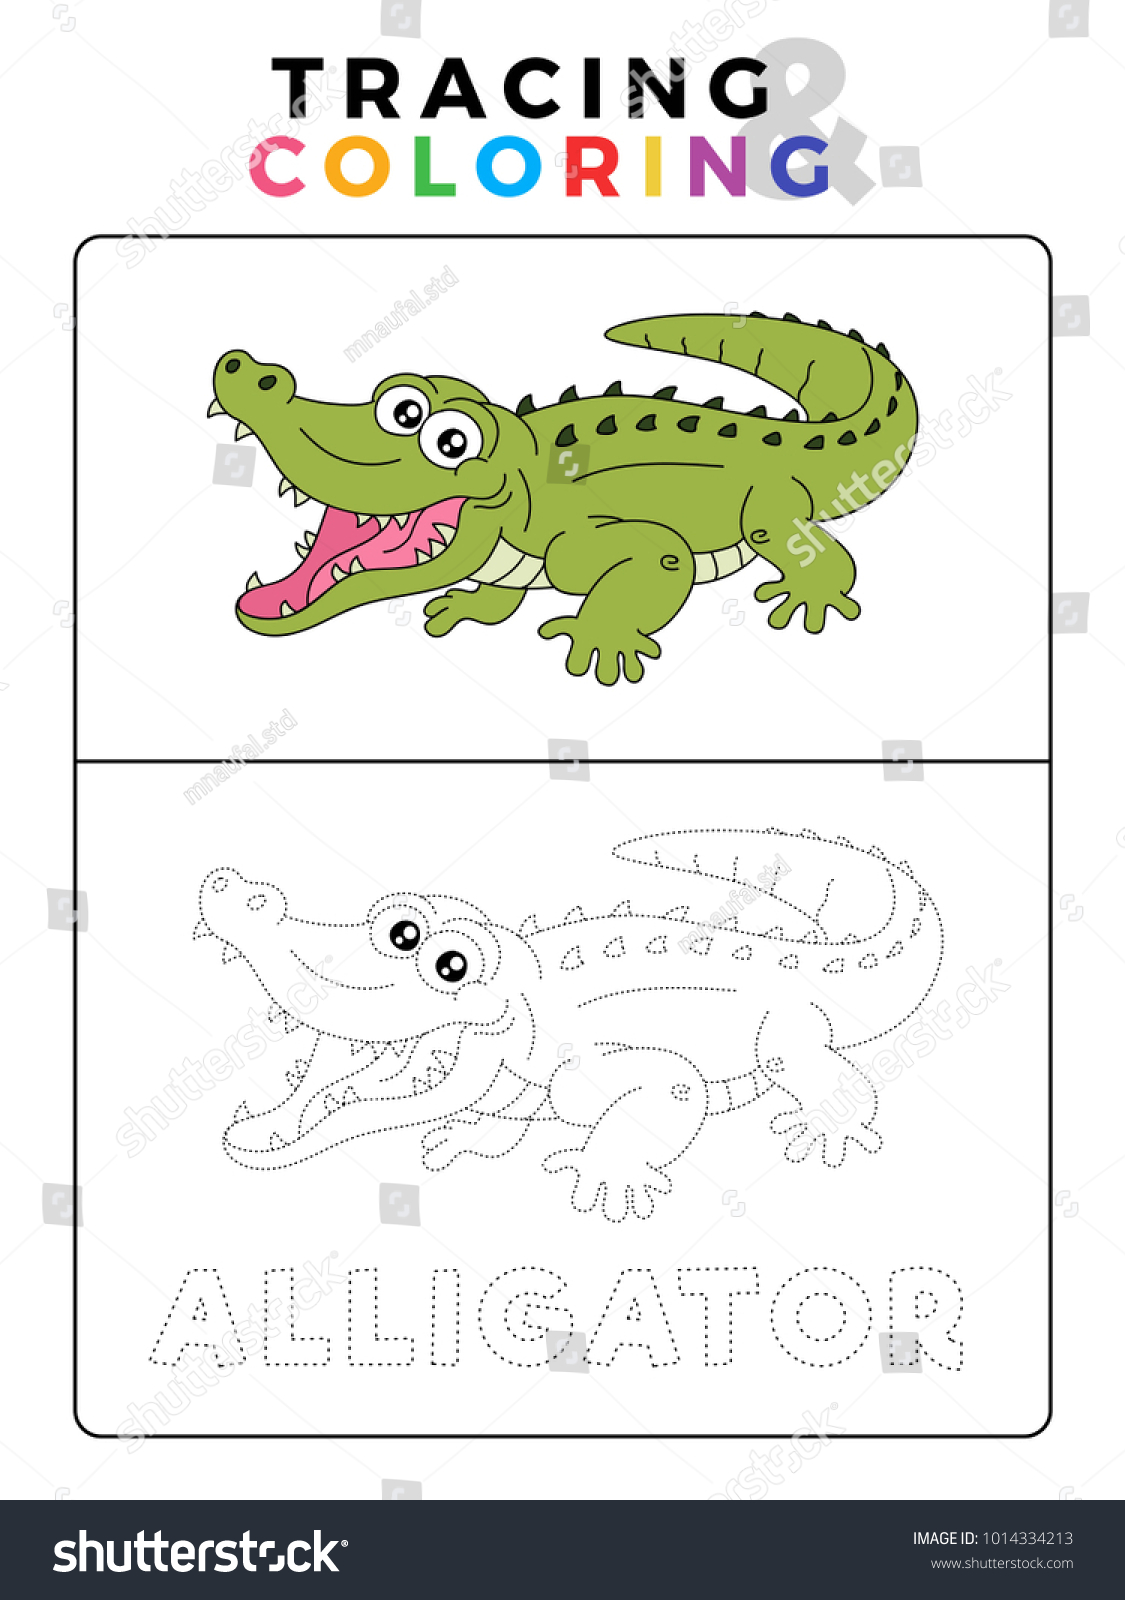 Funny Alligator Crocodile Animal Tracing Coloring Stock Vector ...